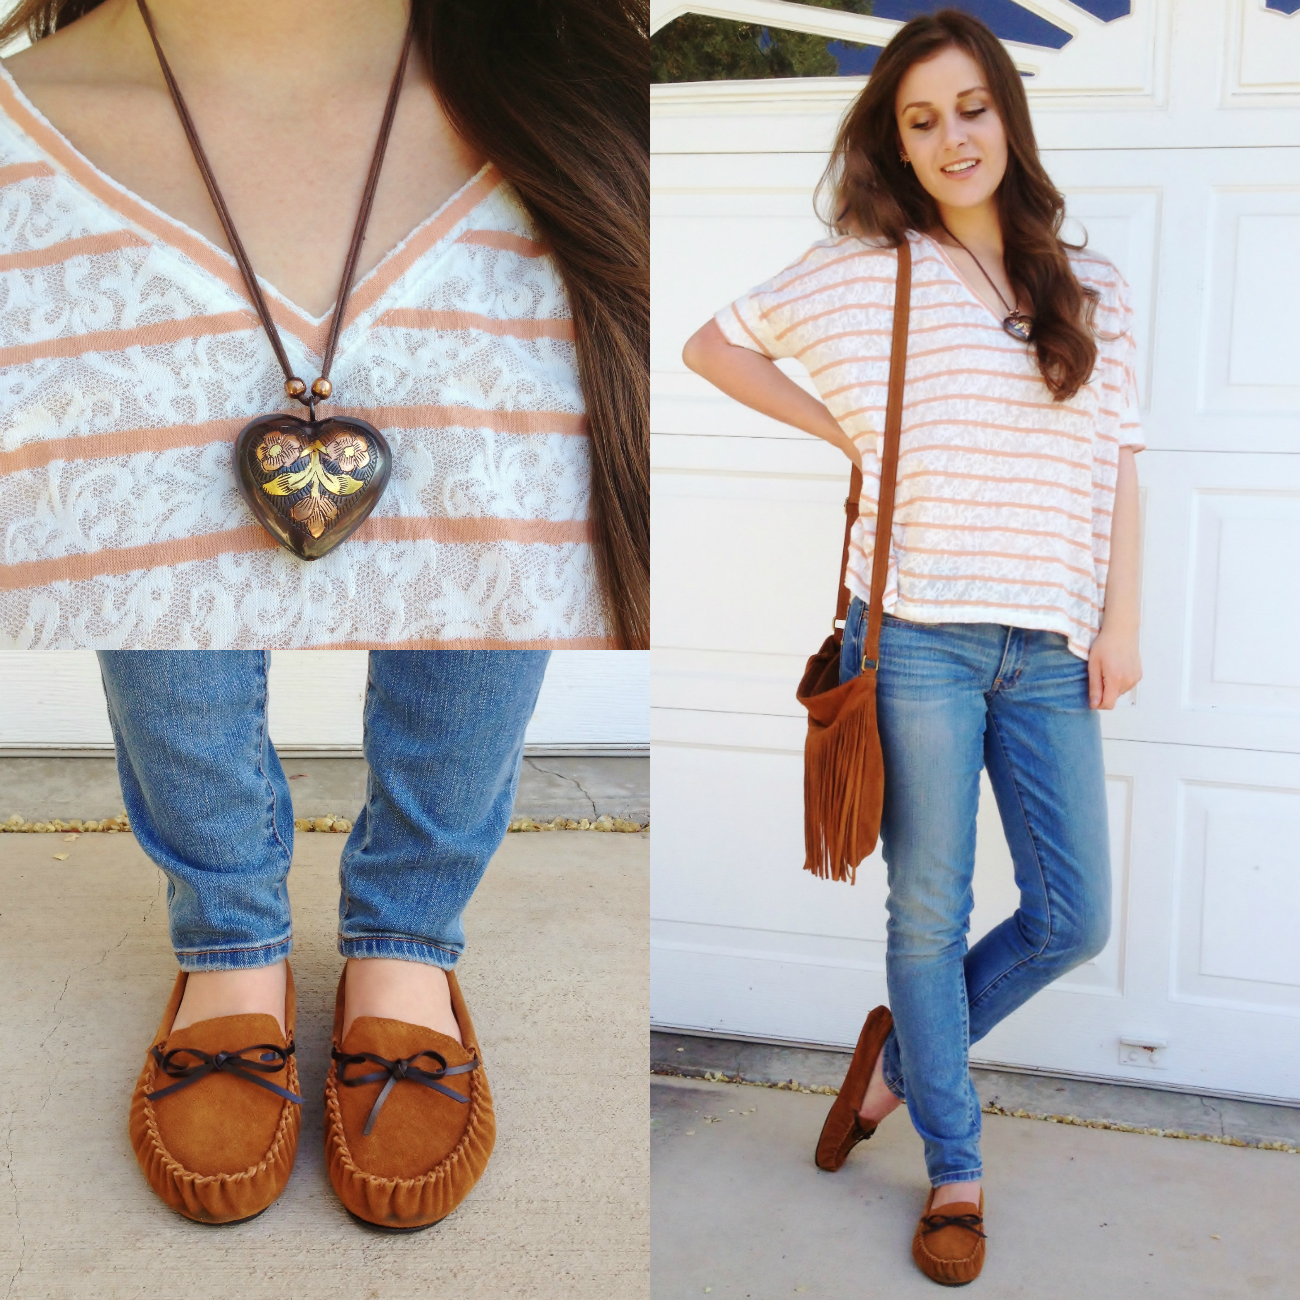 Brown Moccasin Fashion Styles